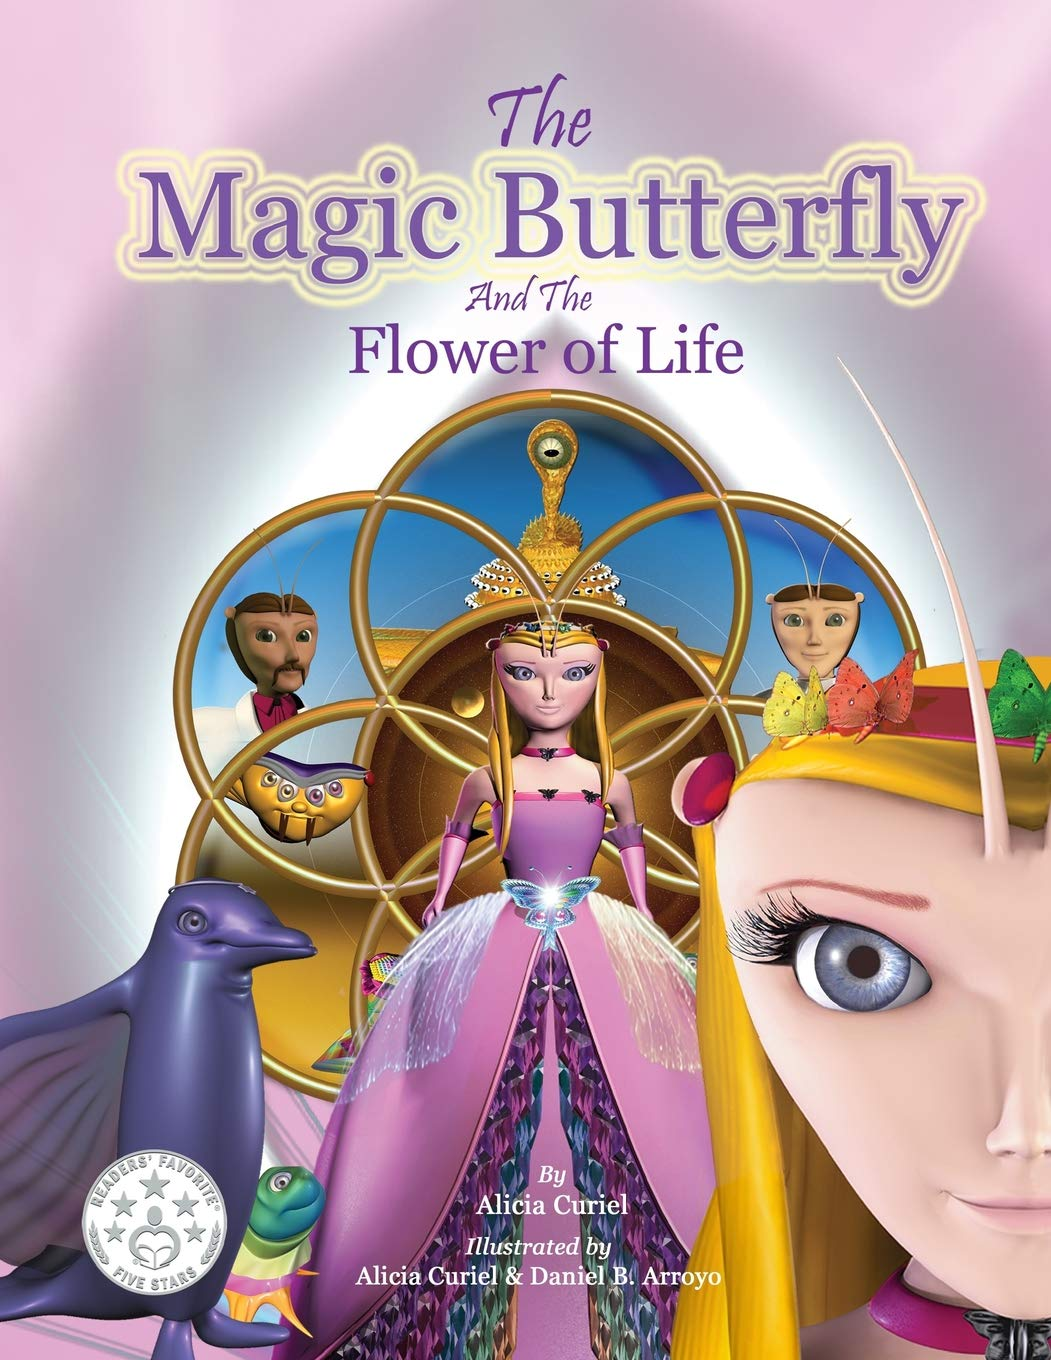 The Magic Butterfly and The Flower of Life: Books for Kids, Stories For Kids Ages 8-10 (Kids Early Chapter Books - Bedtime Stories For Kids - Children's Books) pdf epub